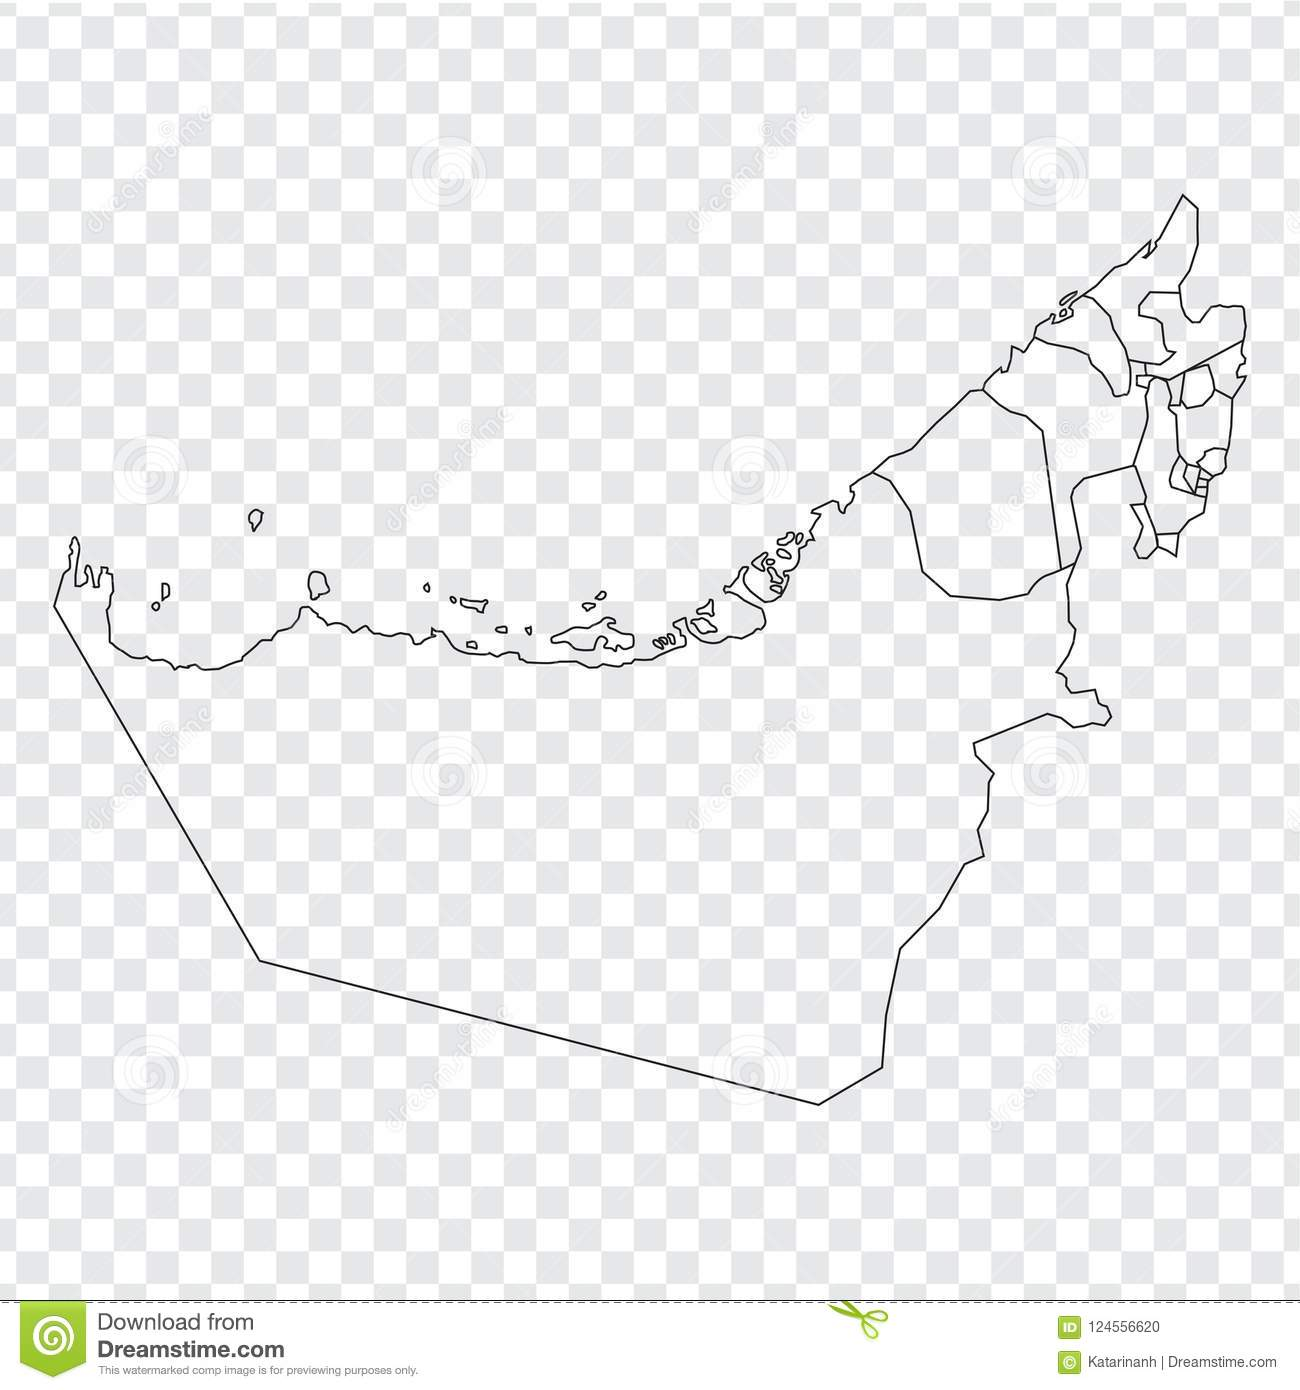 Blank Map United Arab Emirates. High Quality Map Of United ... on countries of uae, cities of uae, regions of uae, states of uae, geographical features of uae, national flag of uae, peninsulas of uae,